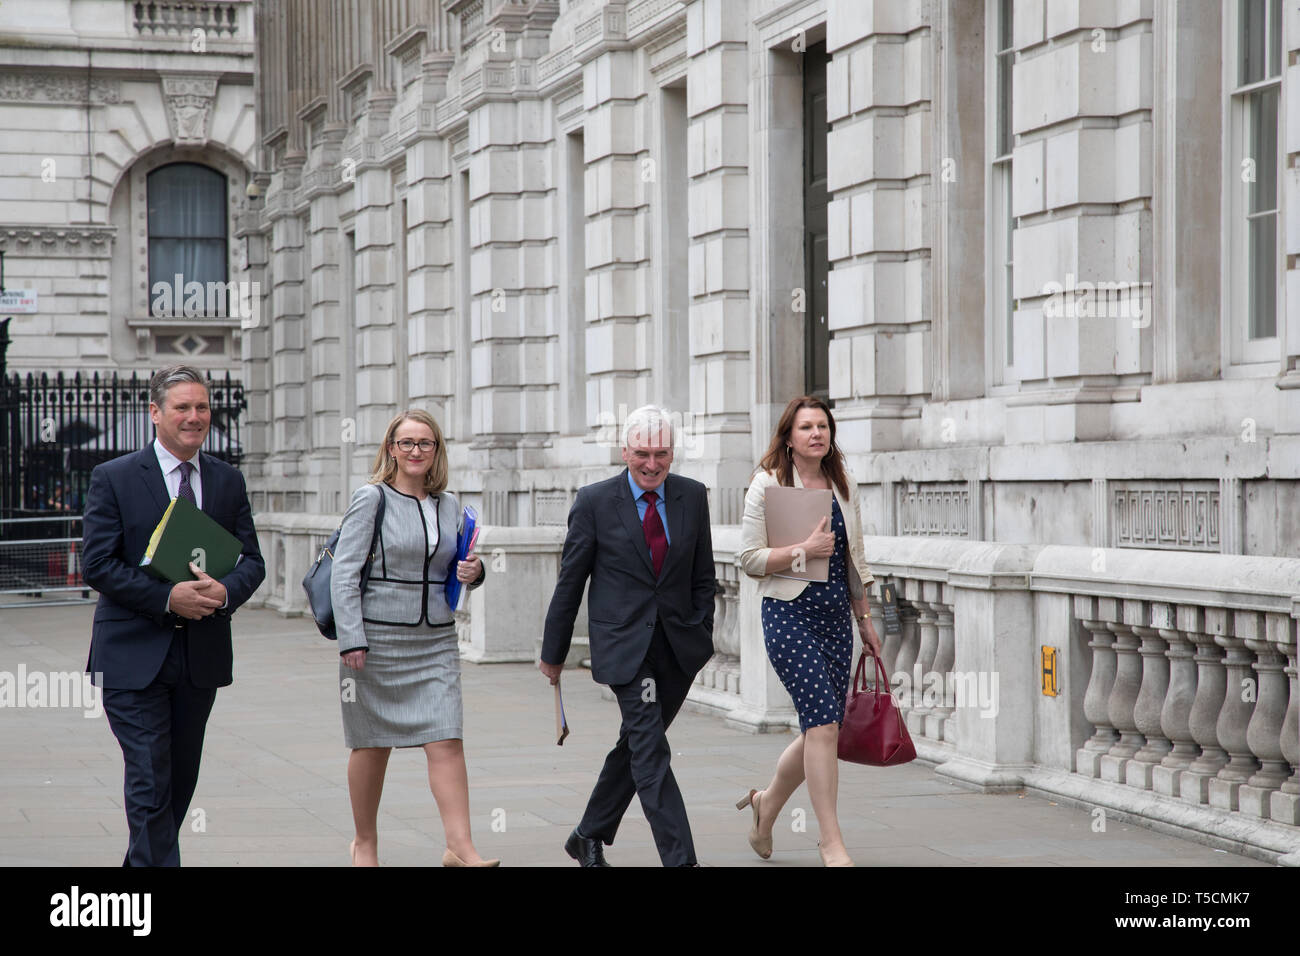 Cabinet Office, London, UK. 23 April 2019. (L-R) Keir Starmer, Rebecca Long-Bailey, John McDonald and a Labour aide resume Brexit talks  with the government at Cabinet Office, Westminster. Credit: Santo Basone/Alamy Live News - Stock Image